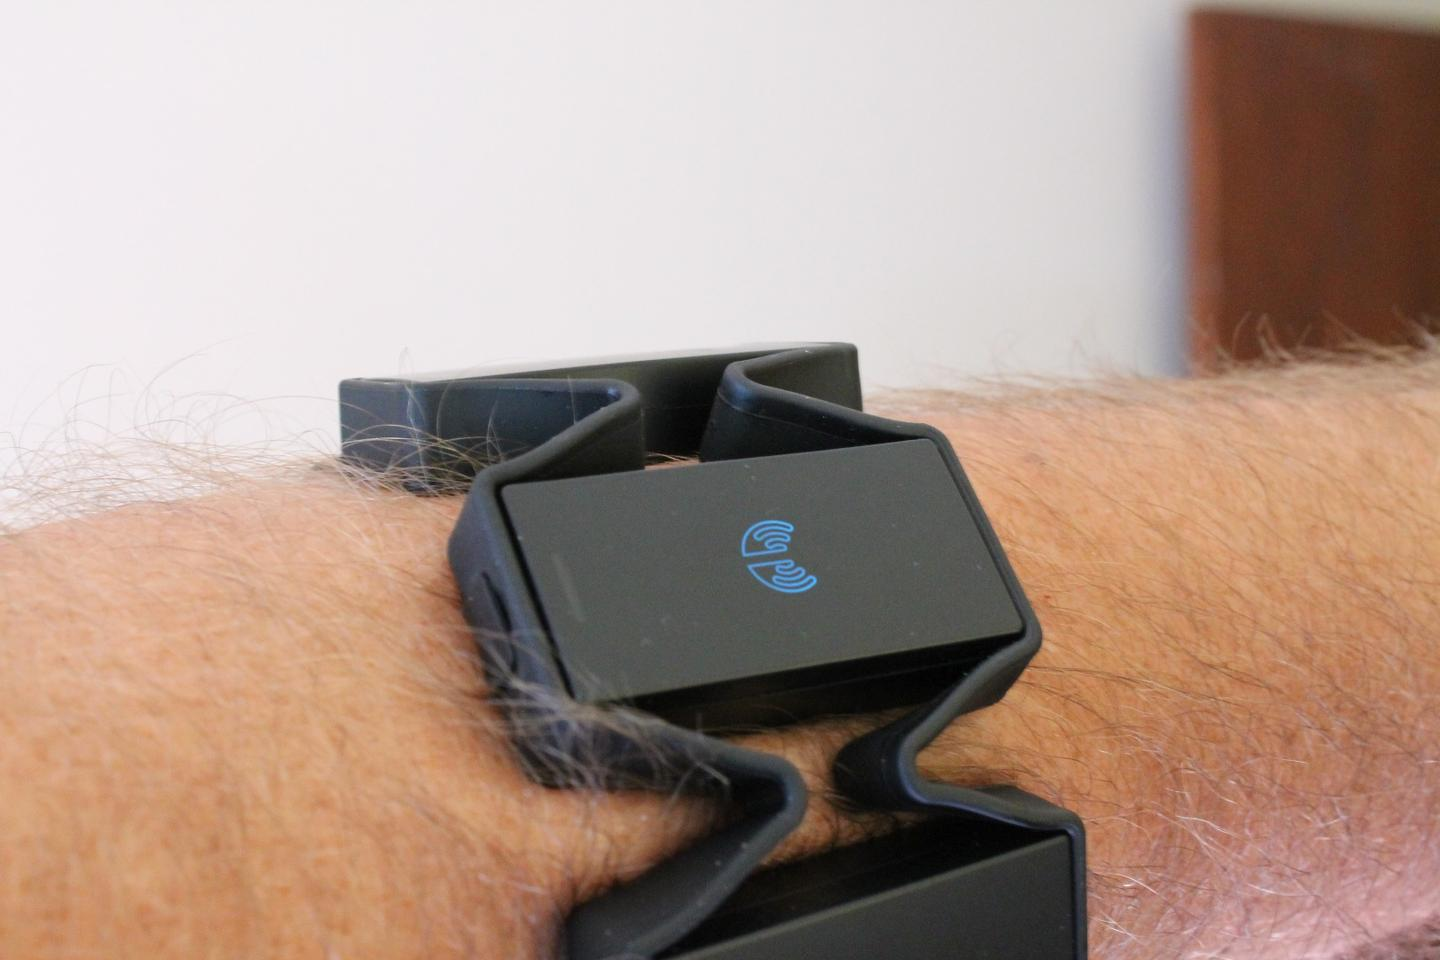 Myo measures electrical muscle activity to read certain gestures